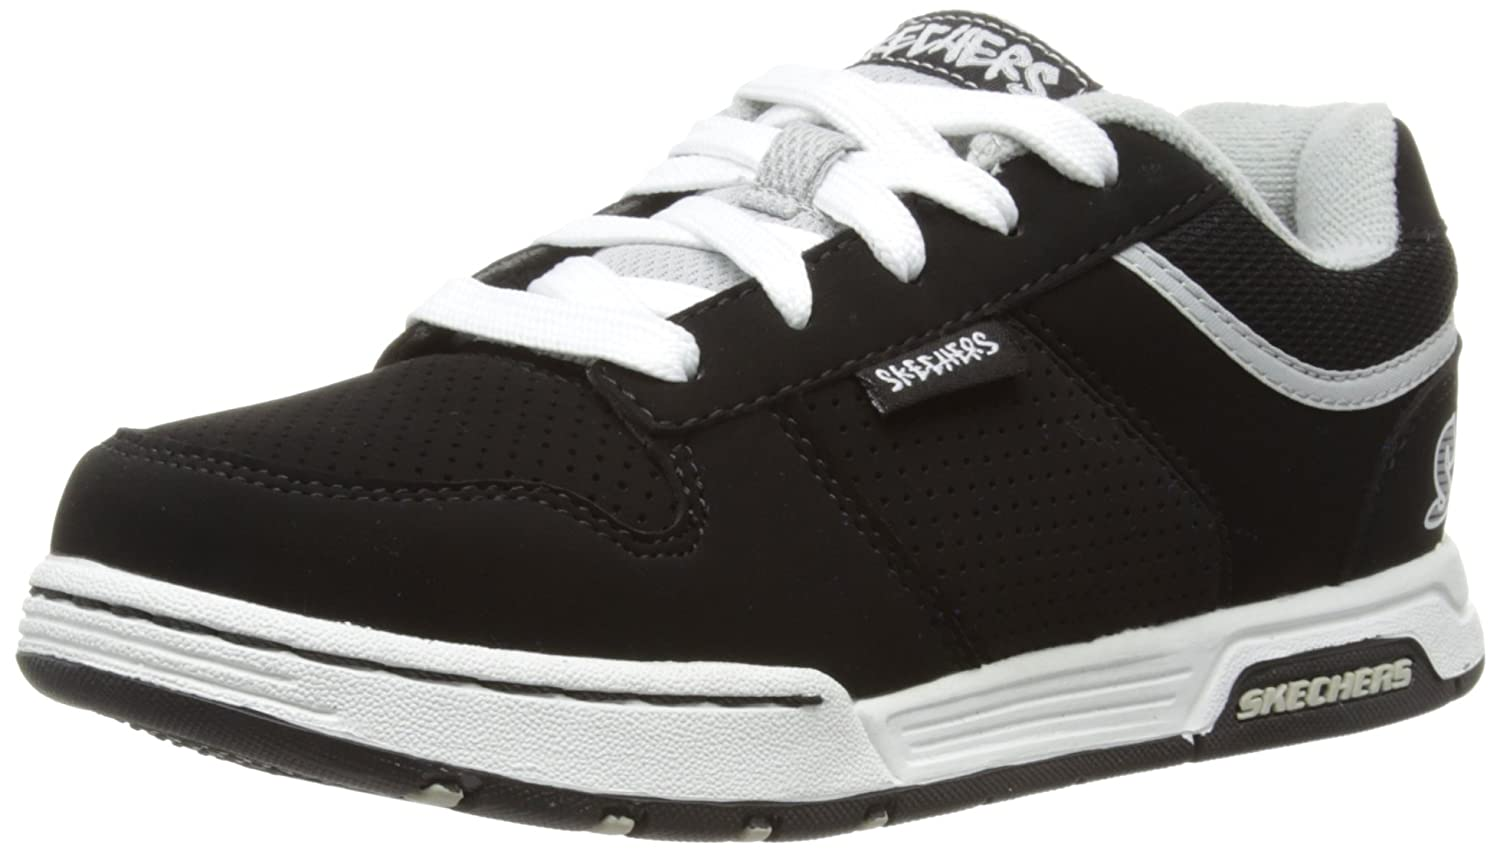 Skechers Endorse - Skate Game, Boys' Trainers 39.5 EU 998058L - Click Image to Close